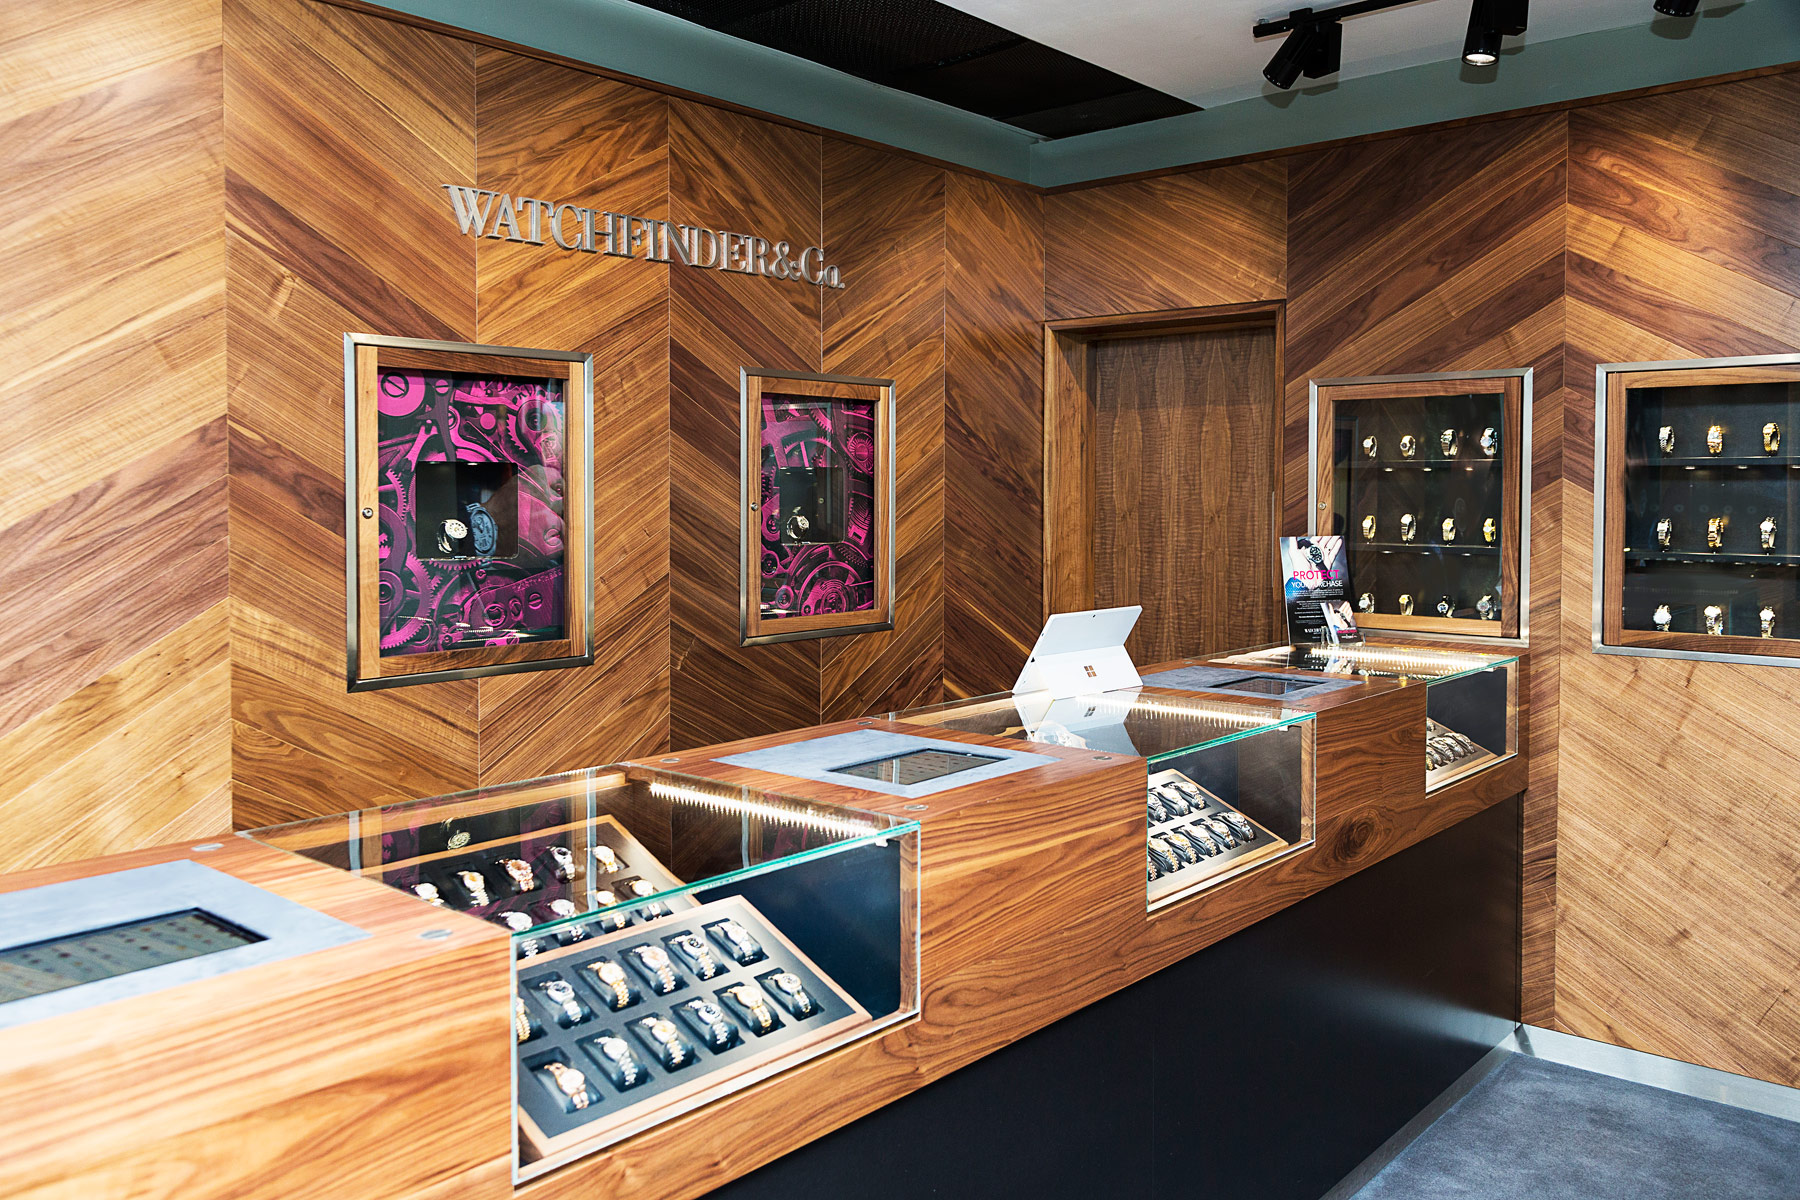 Watchfinder Opens Store In Canary Wharf With Support From HSBC 2